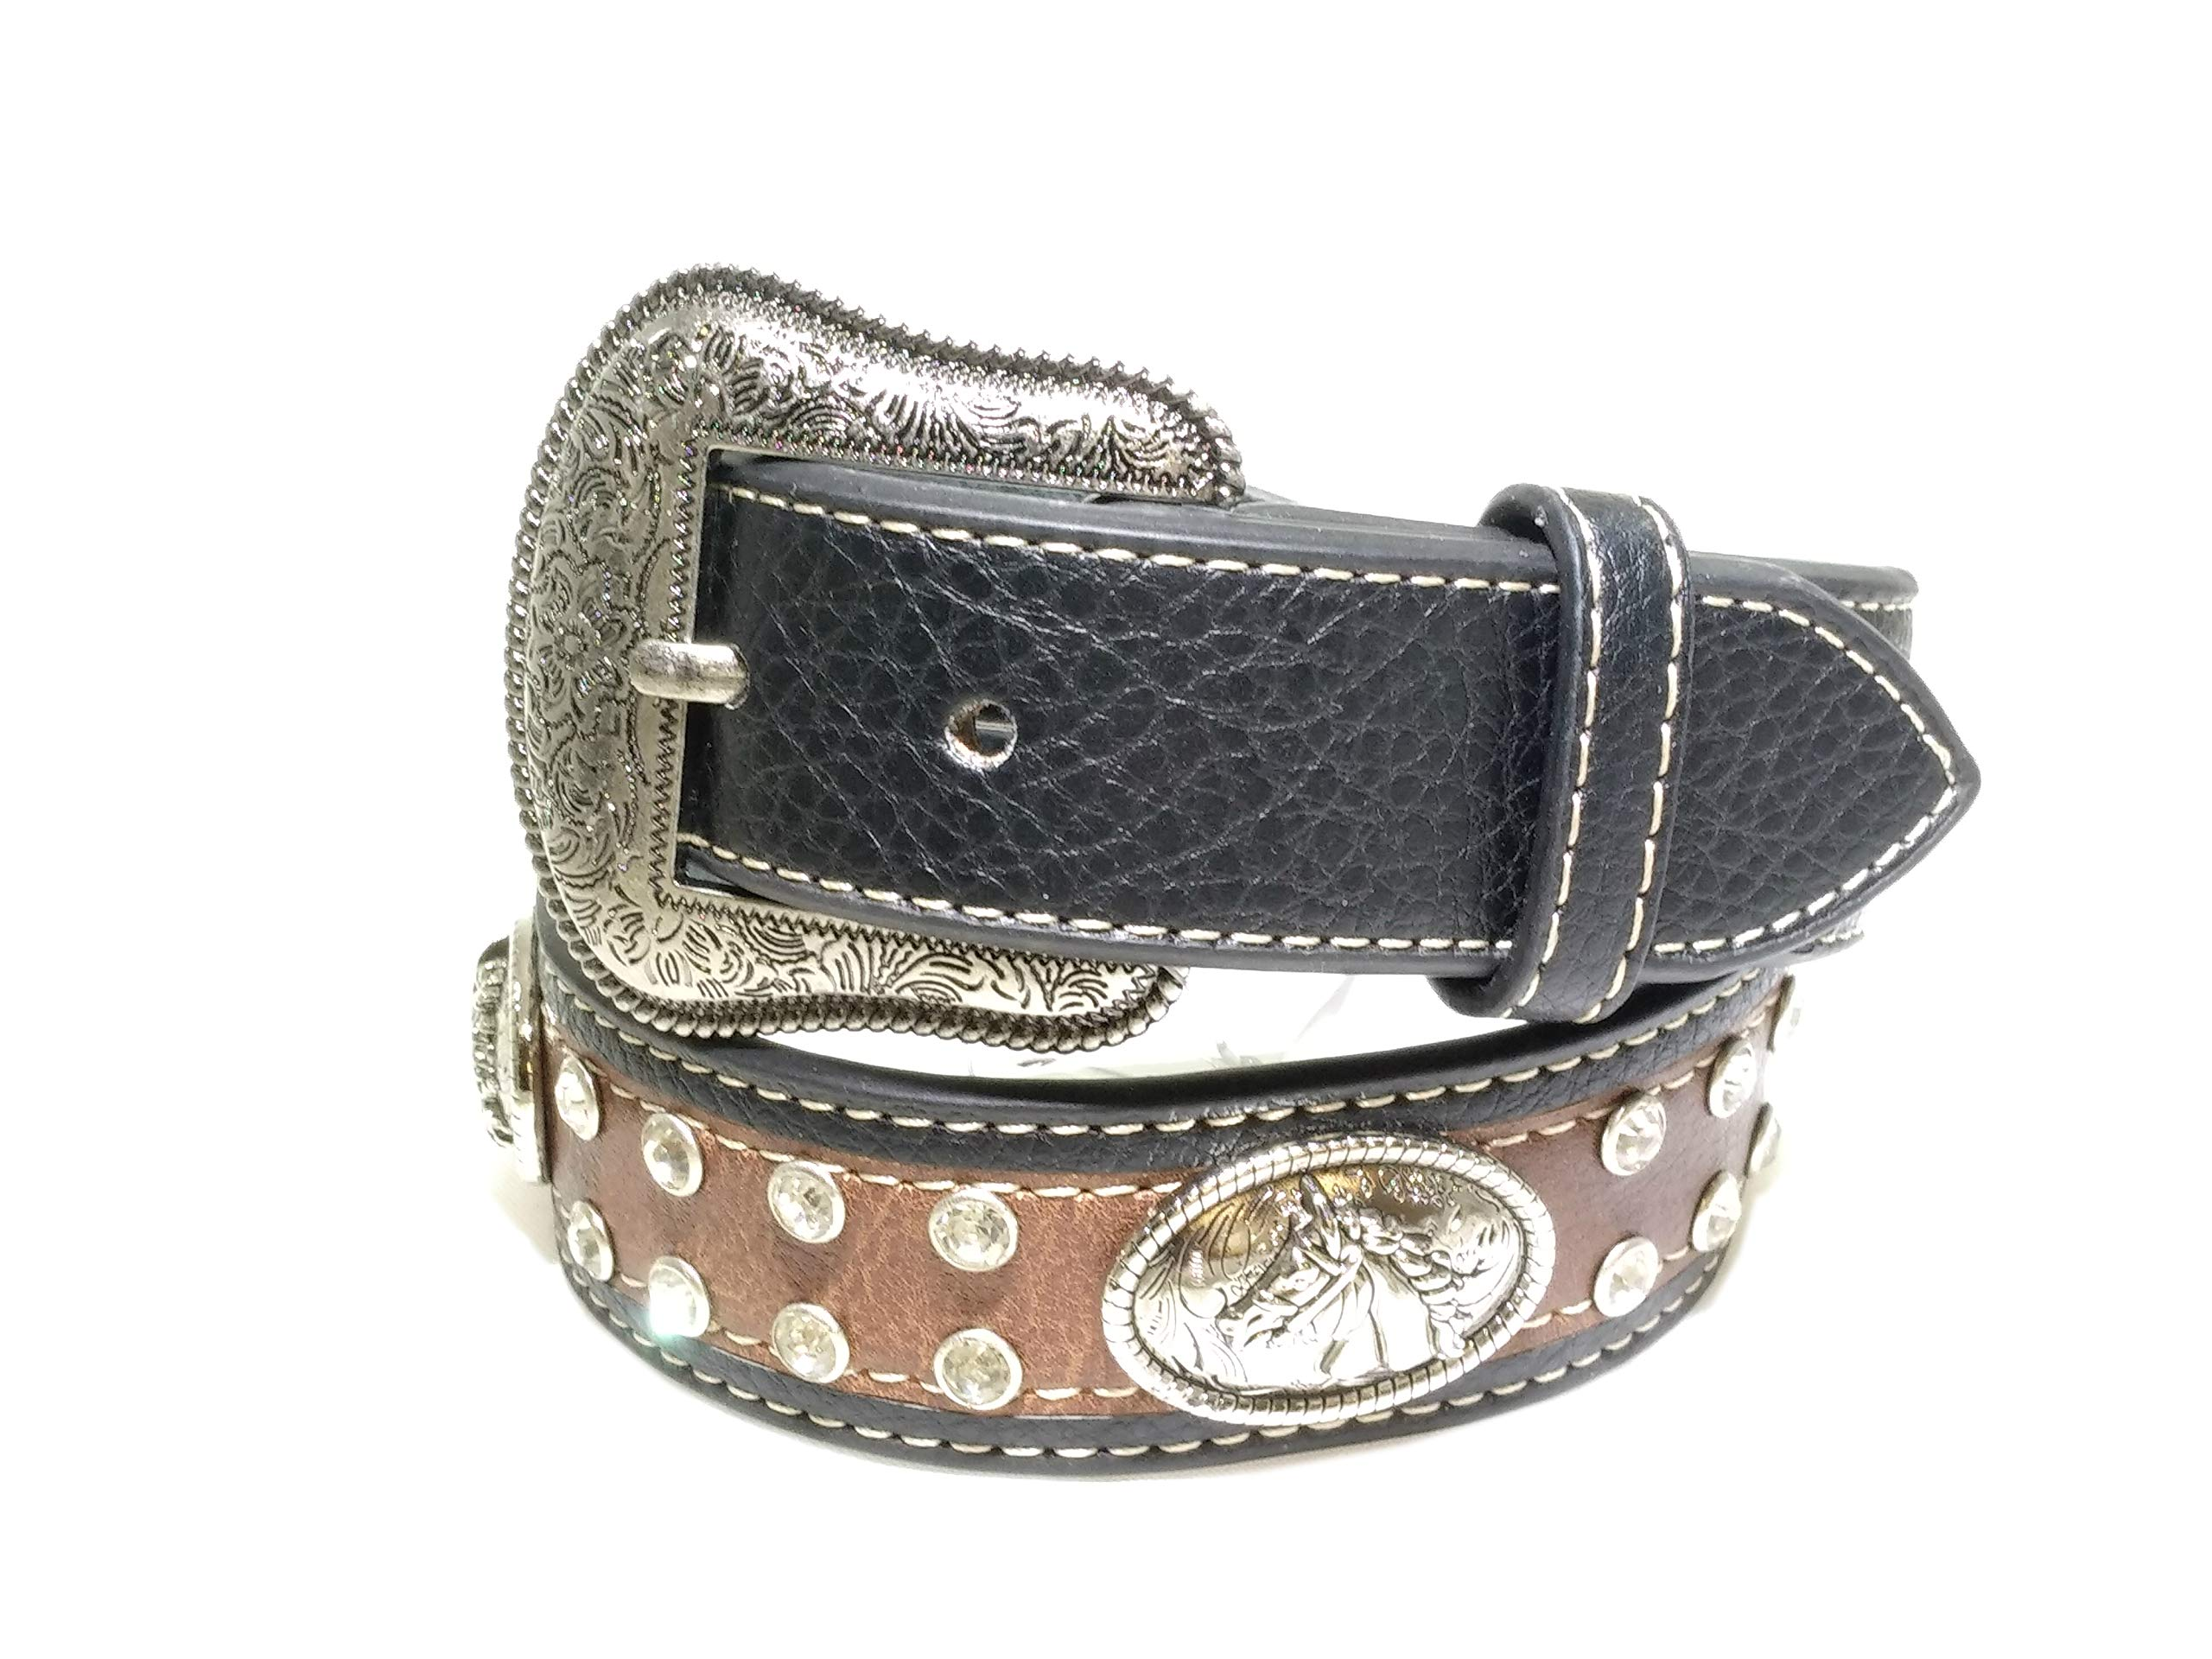 Kids Western Belts with Rhinestone Tooled Leather (Brown-Black, Medium)